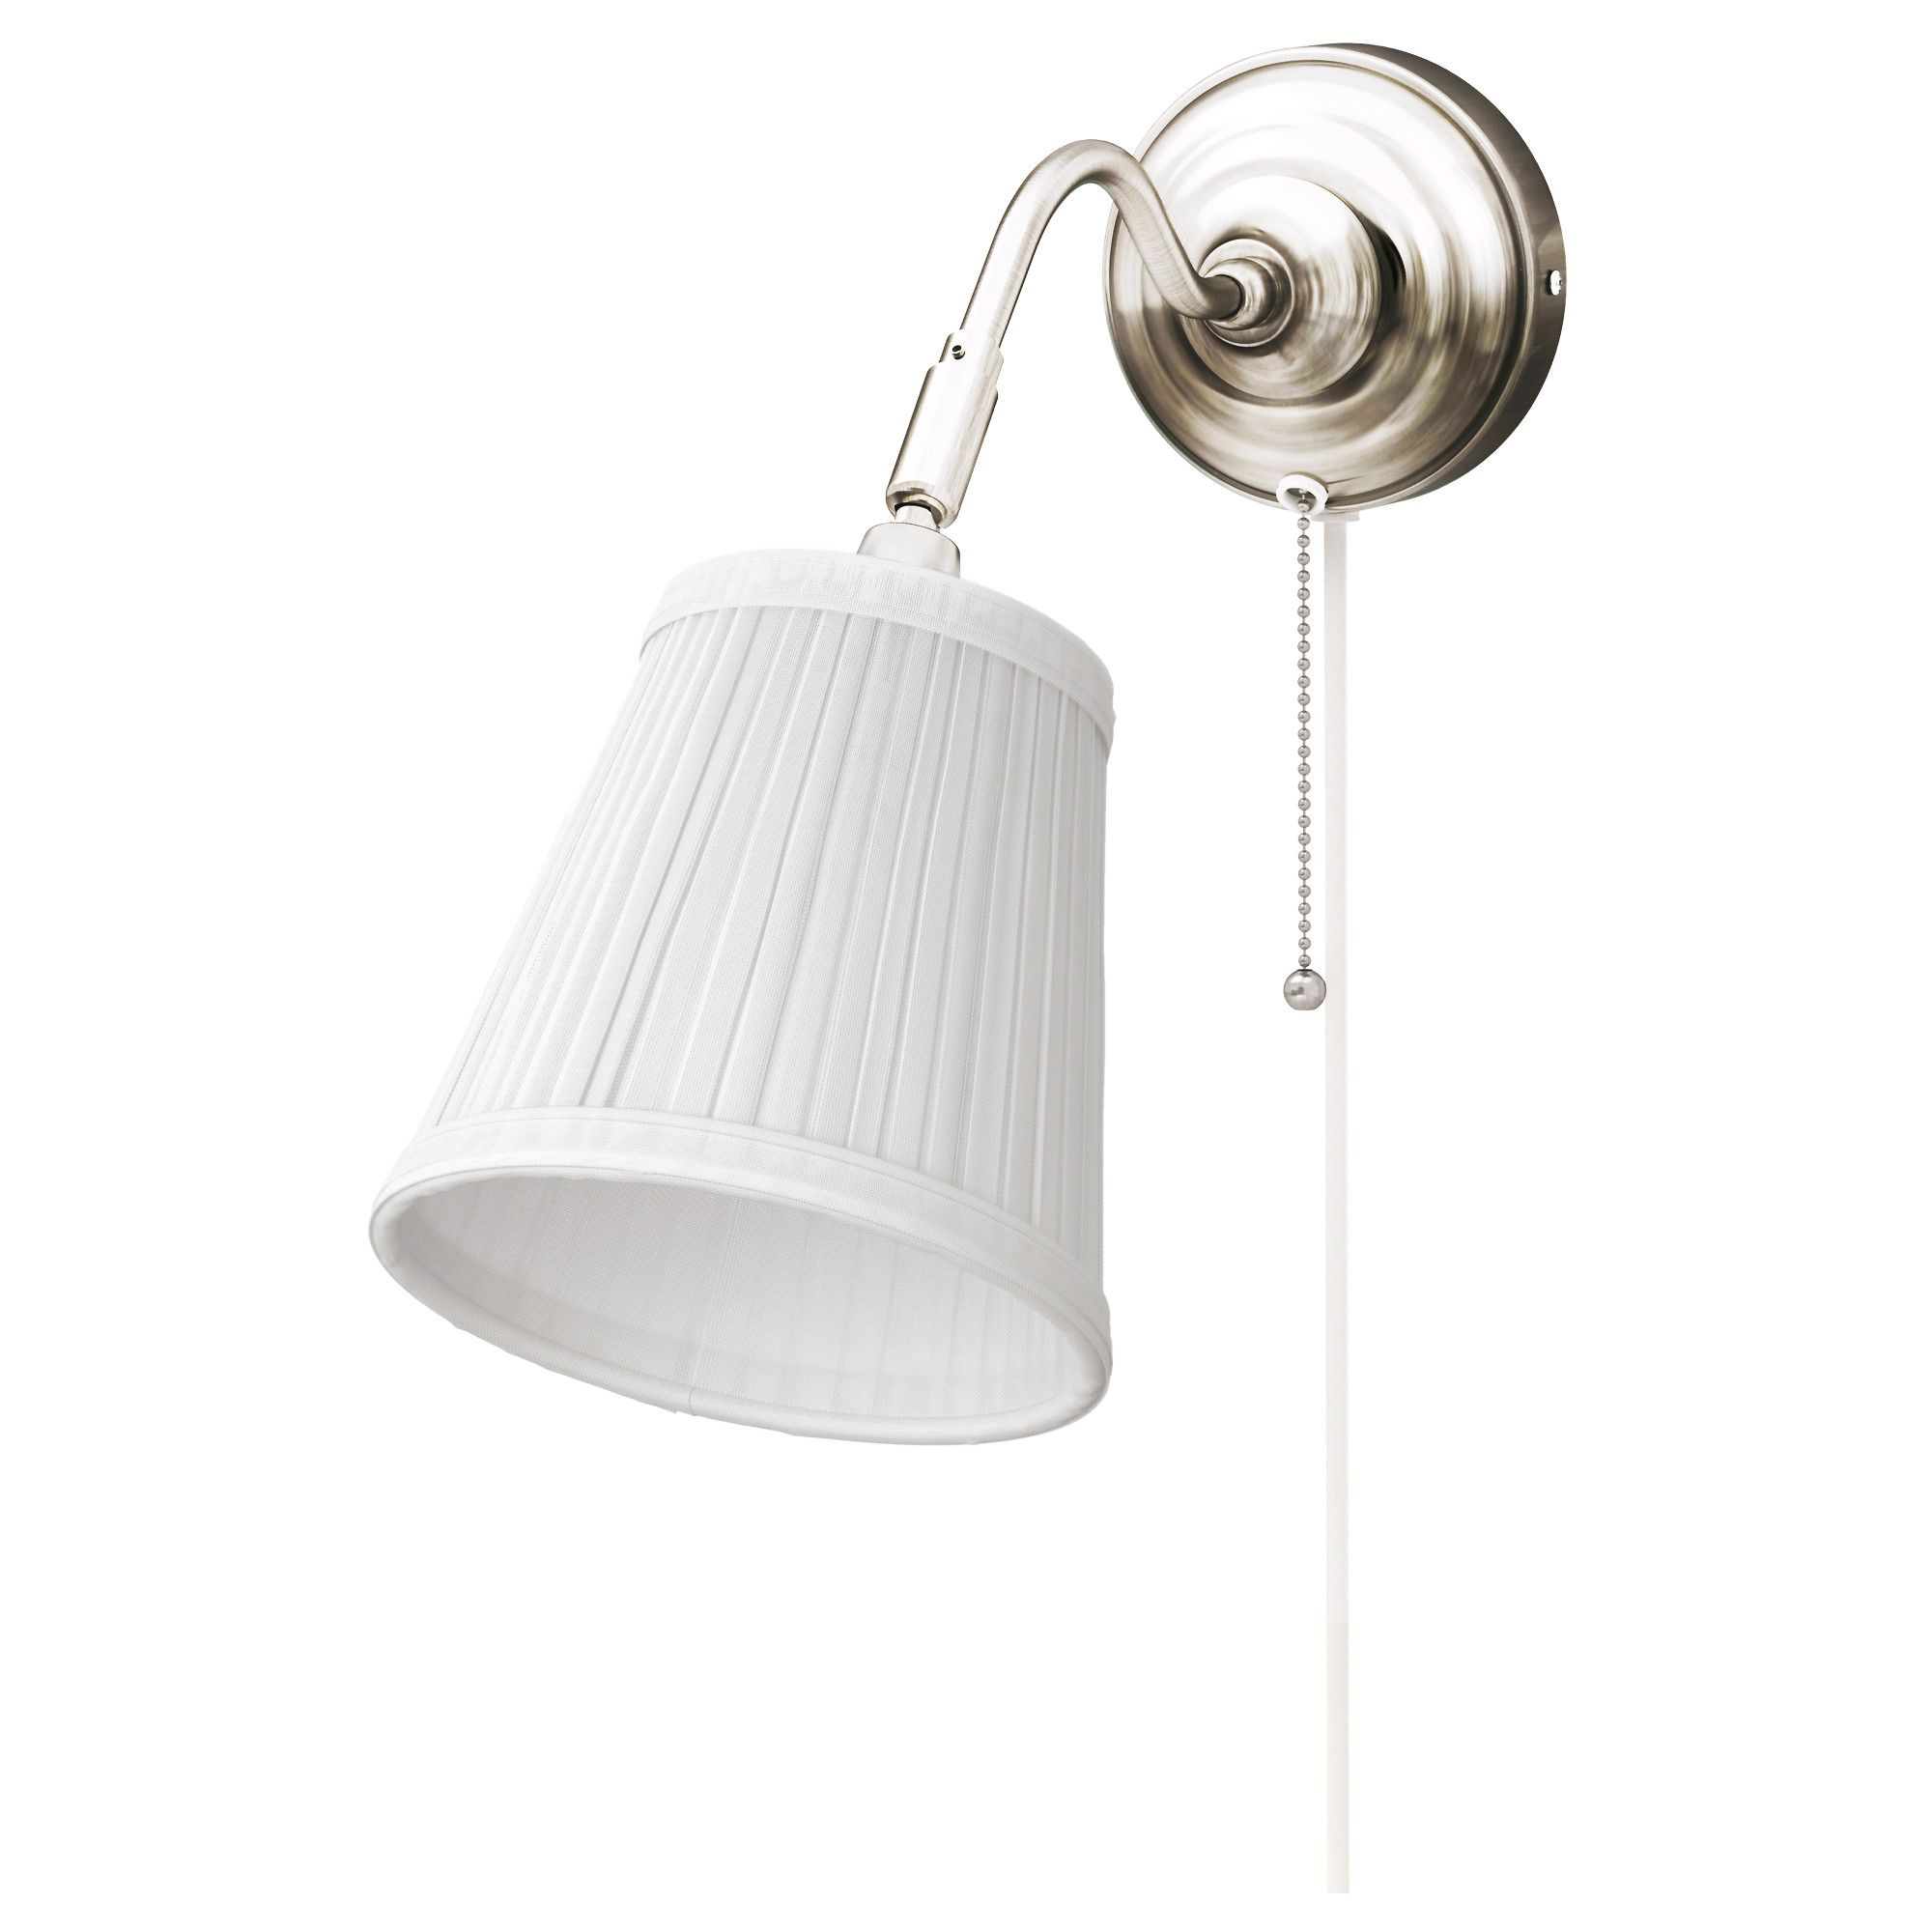 ÅRSTID Wall lamp with LED bulb, nickel plated, white | Decorative ...